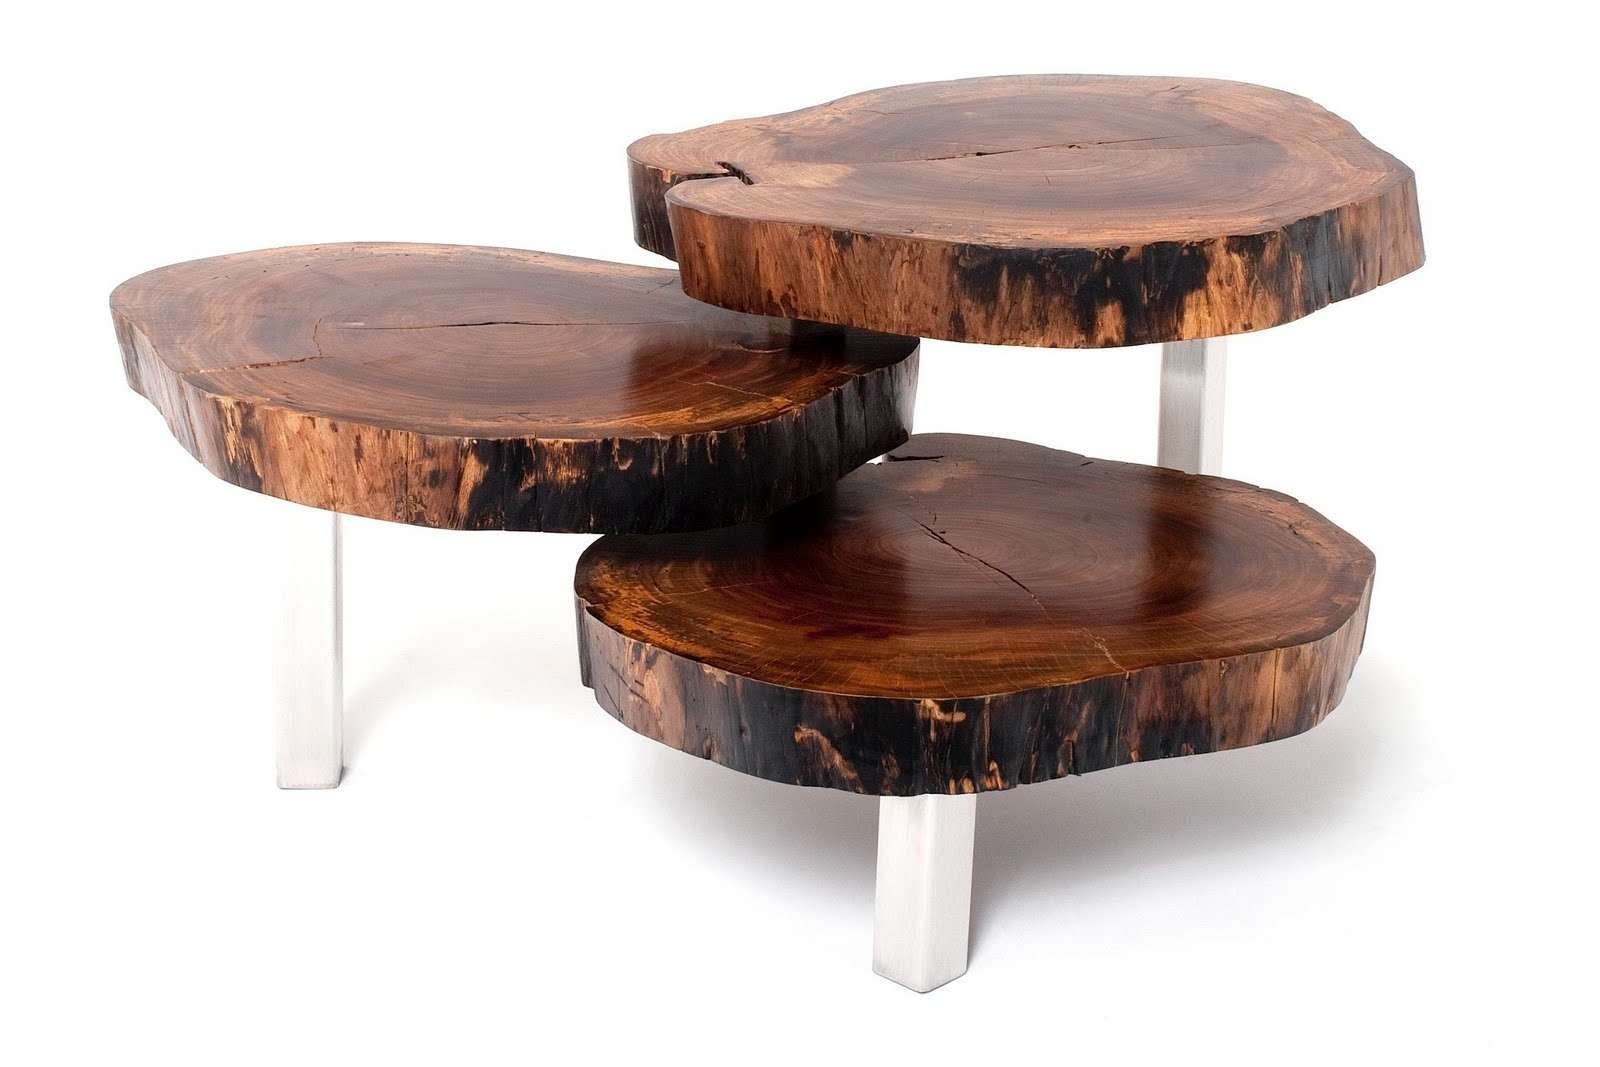 Coffee Table : Remarkable Unique Wood Coffee Tables Pictures Intended For 2018 Unusual Wooden Coffee Tables (View 5 of 20)